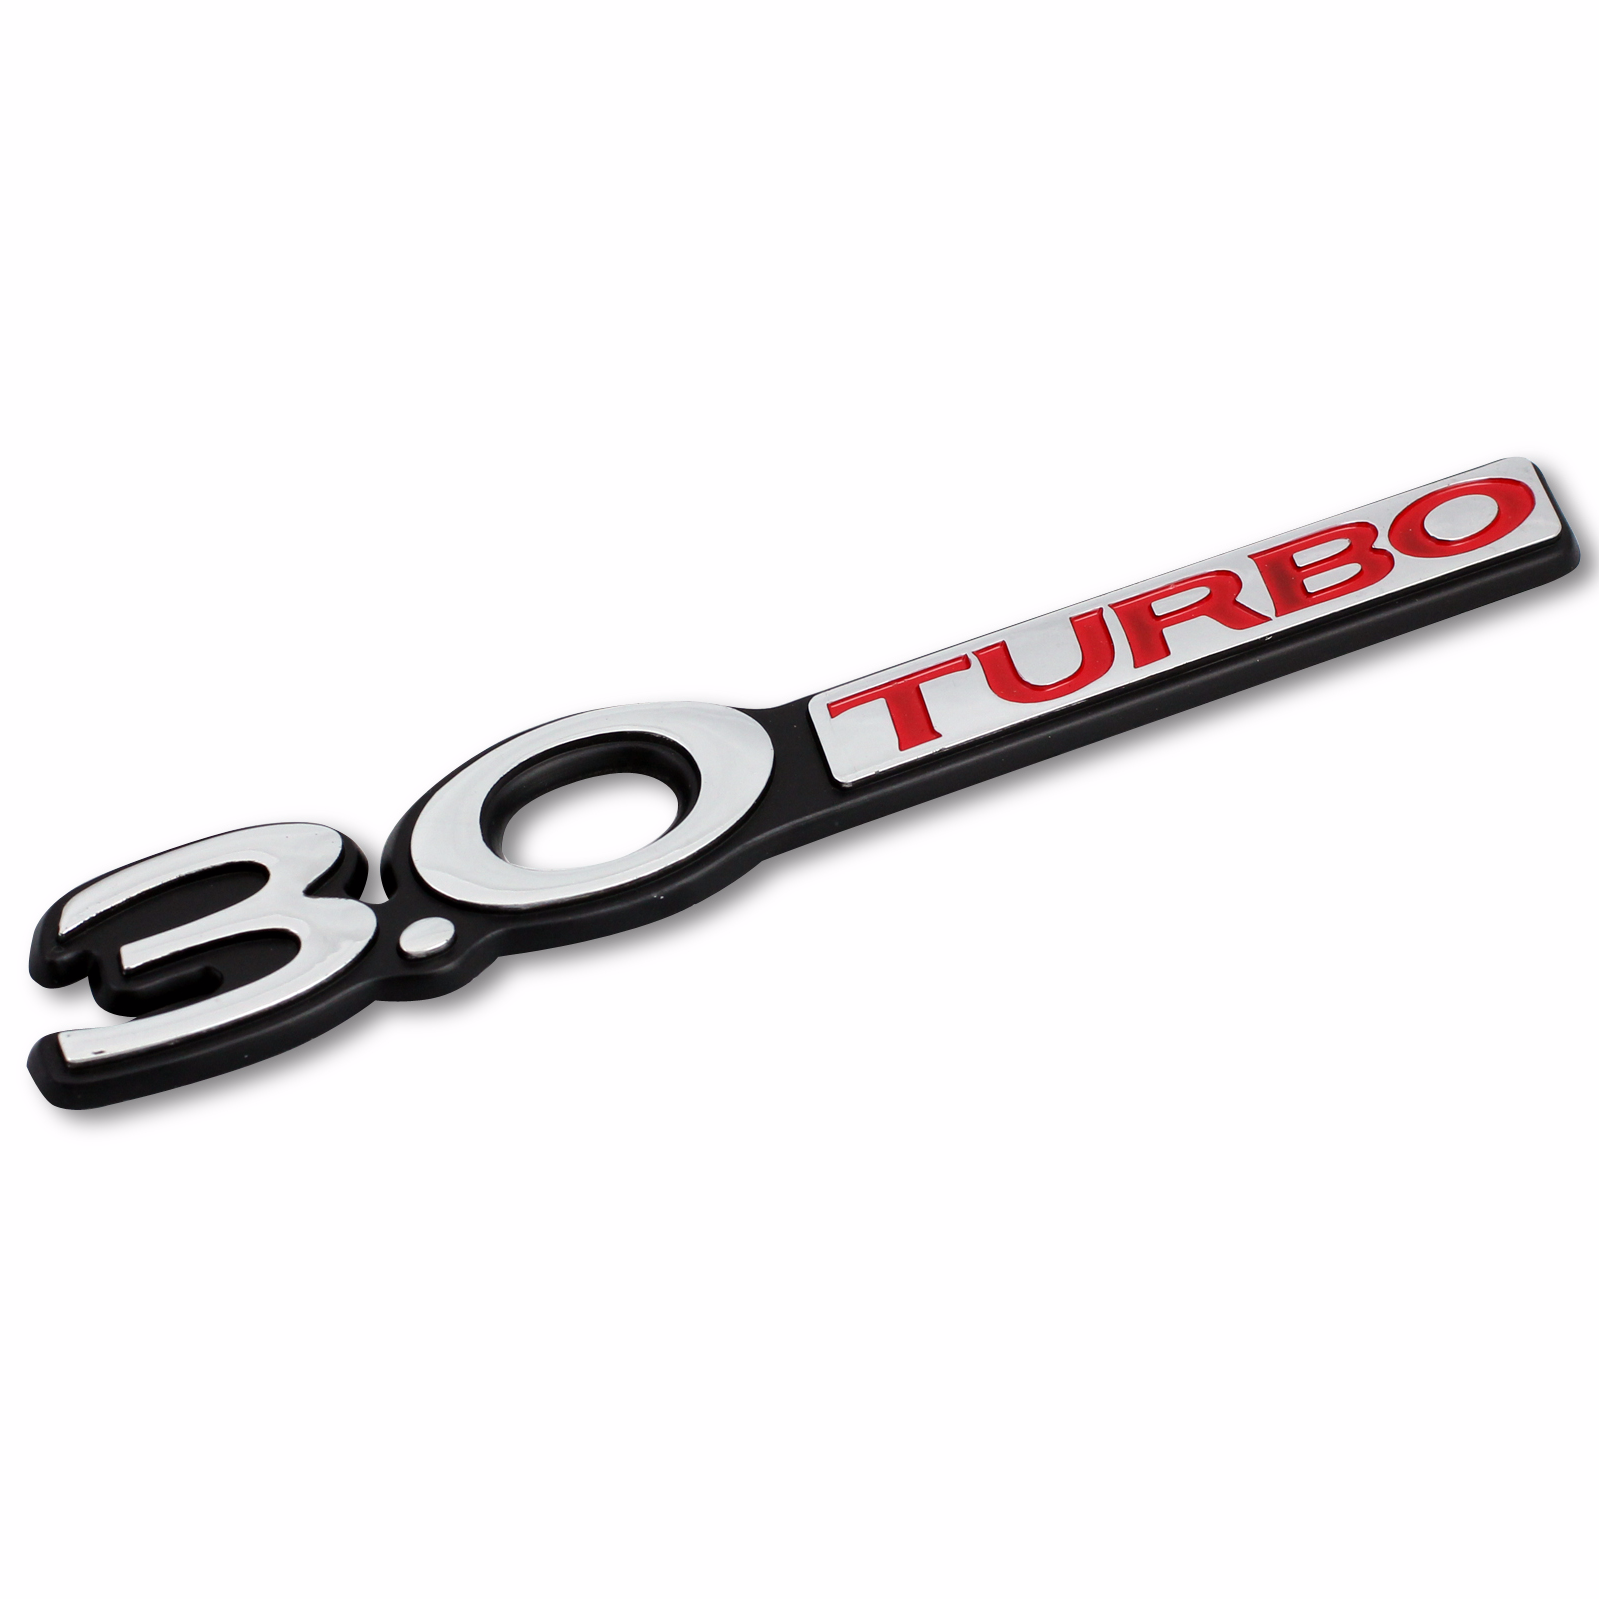 Emblem Logo 3.0 Turbo